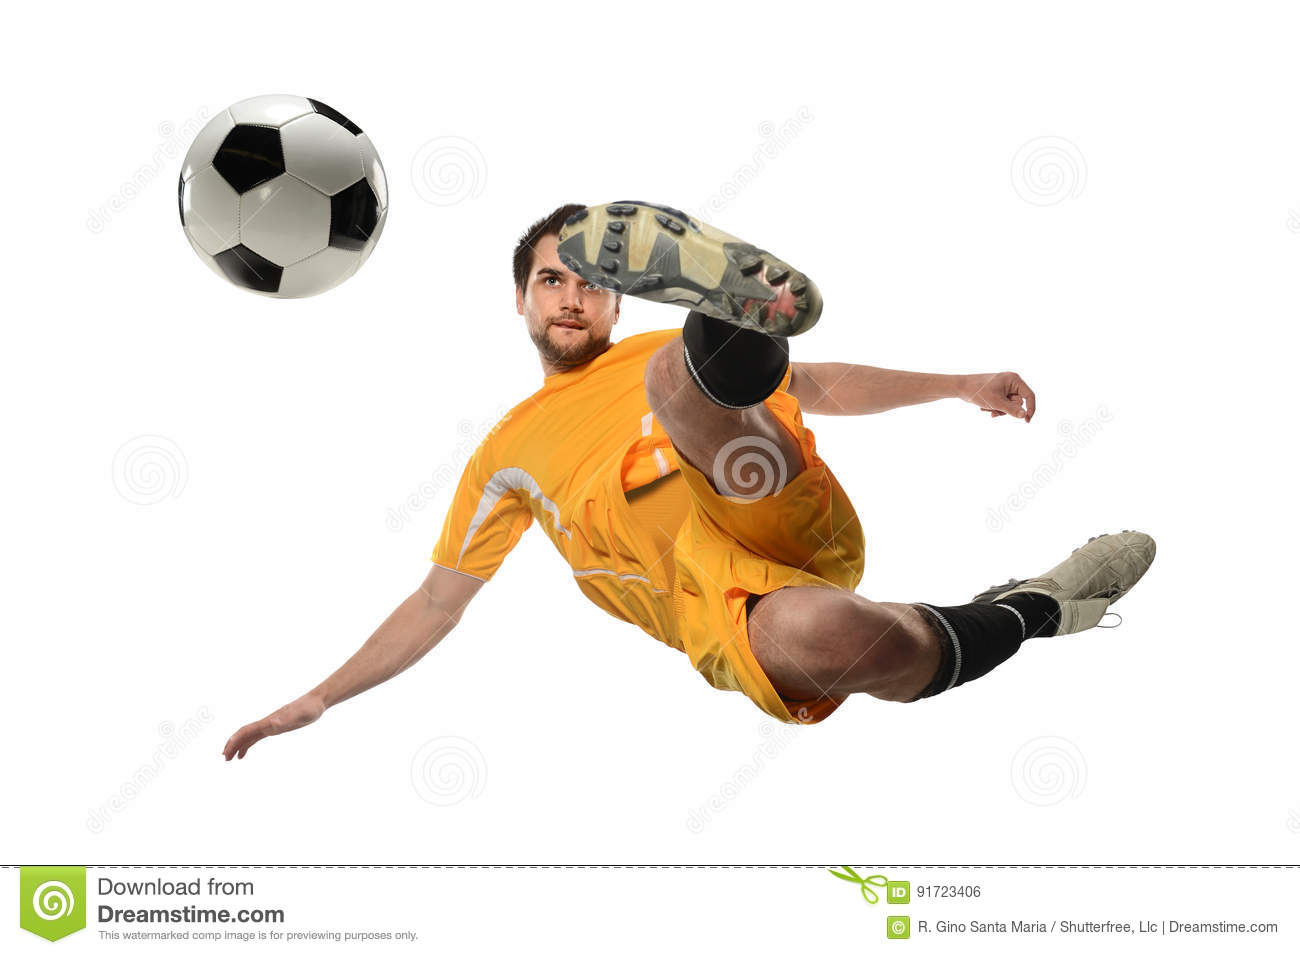 Soccer Player Kicking Ball in Midair